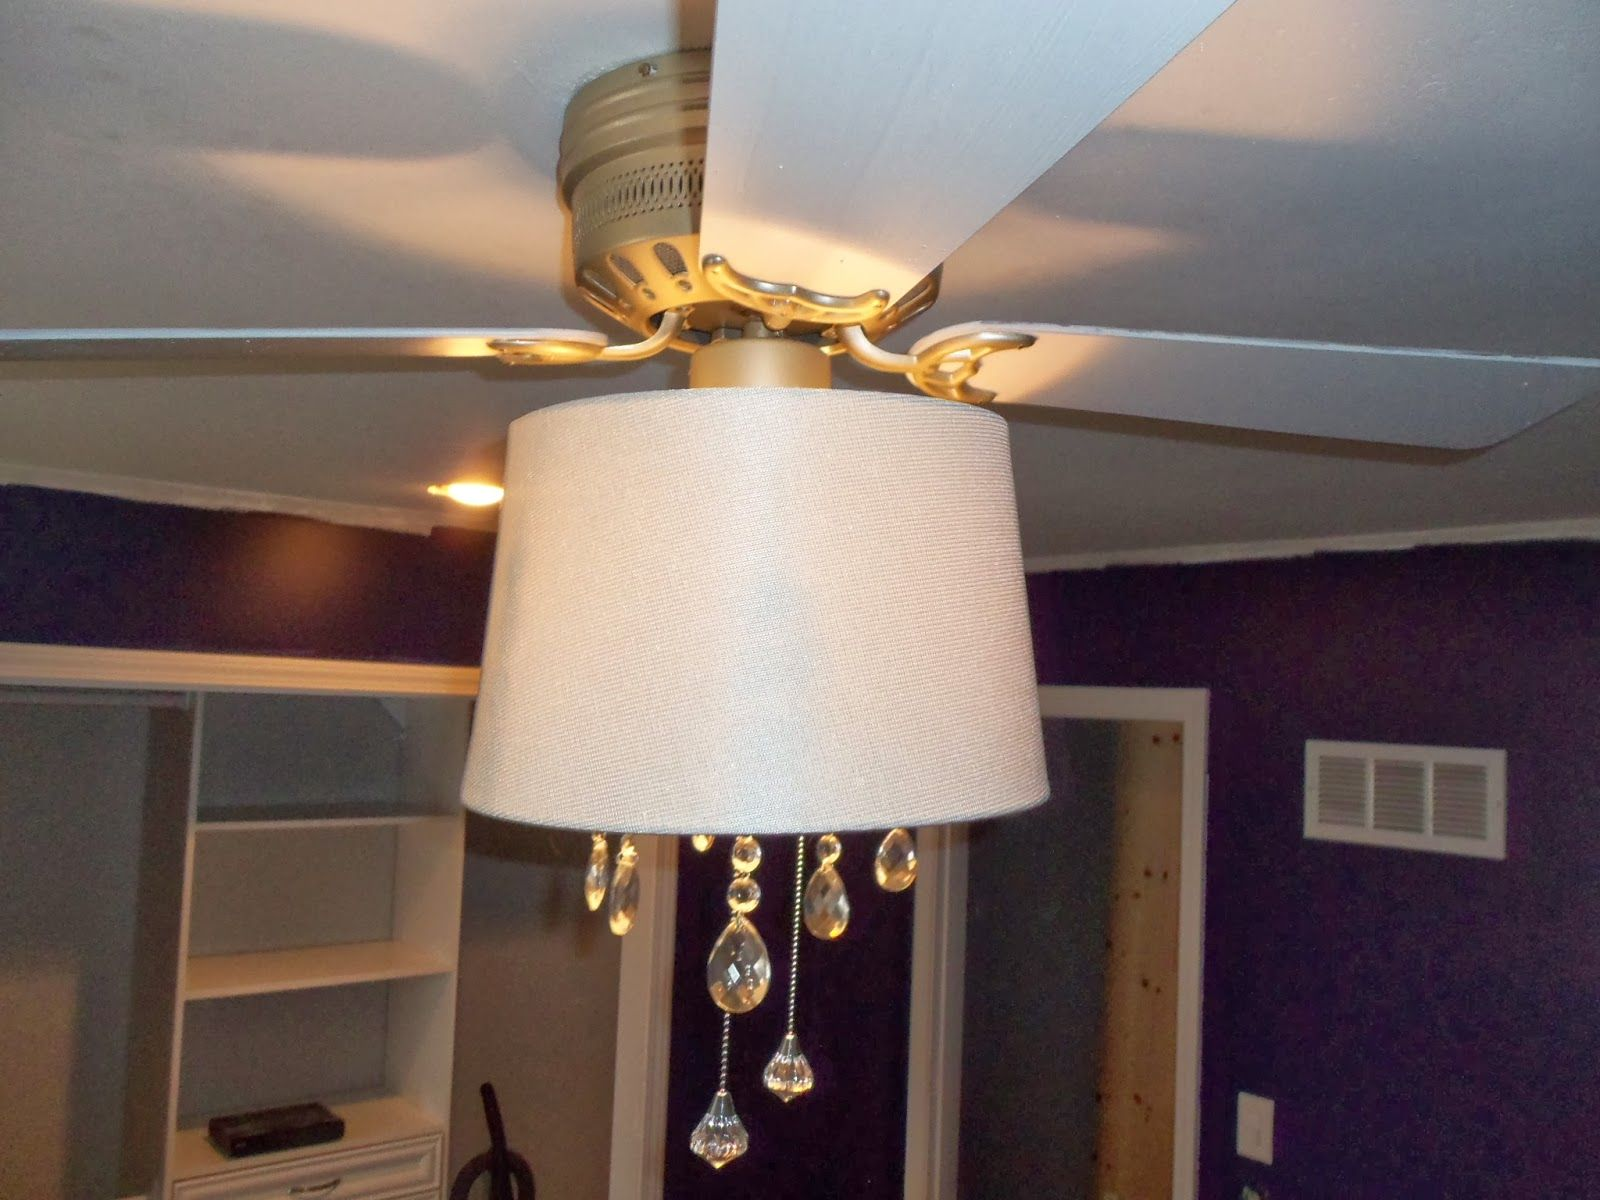 It S Been A Long Week But A Really Productive One The Main Focus Of Our Remodel This Week Was Rewi Ceiling Fan Chandelier Ceiling Fan Diy Bedroom Lighting Diy